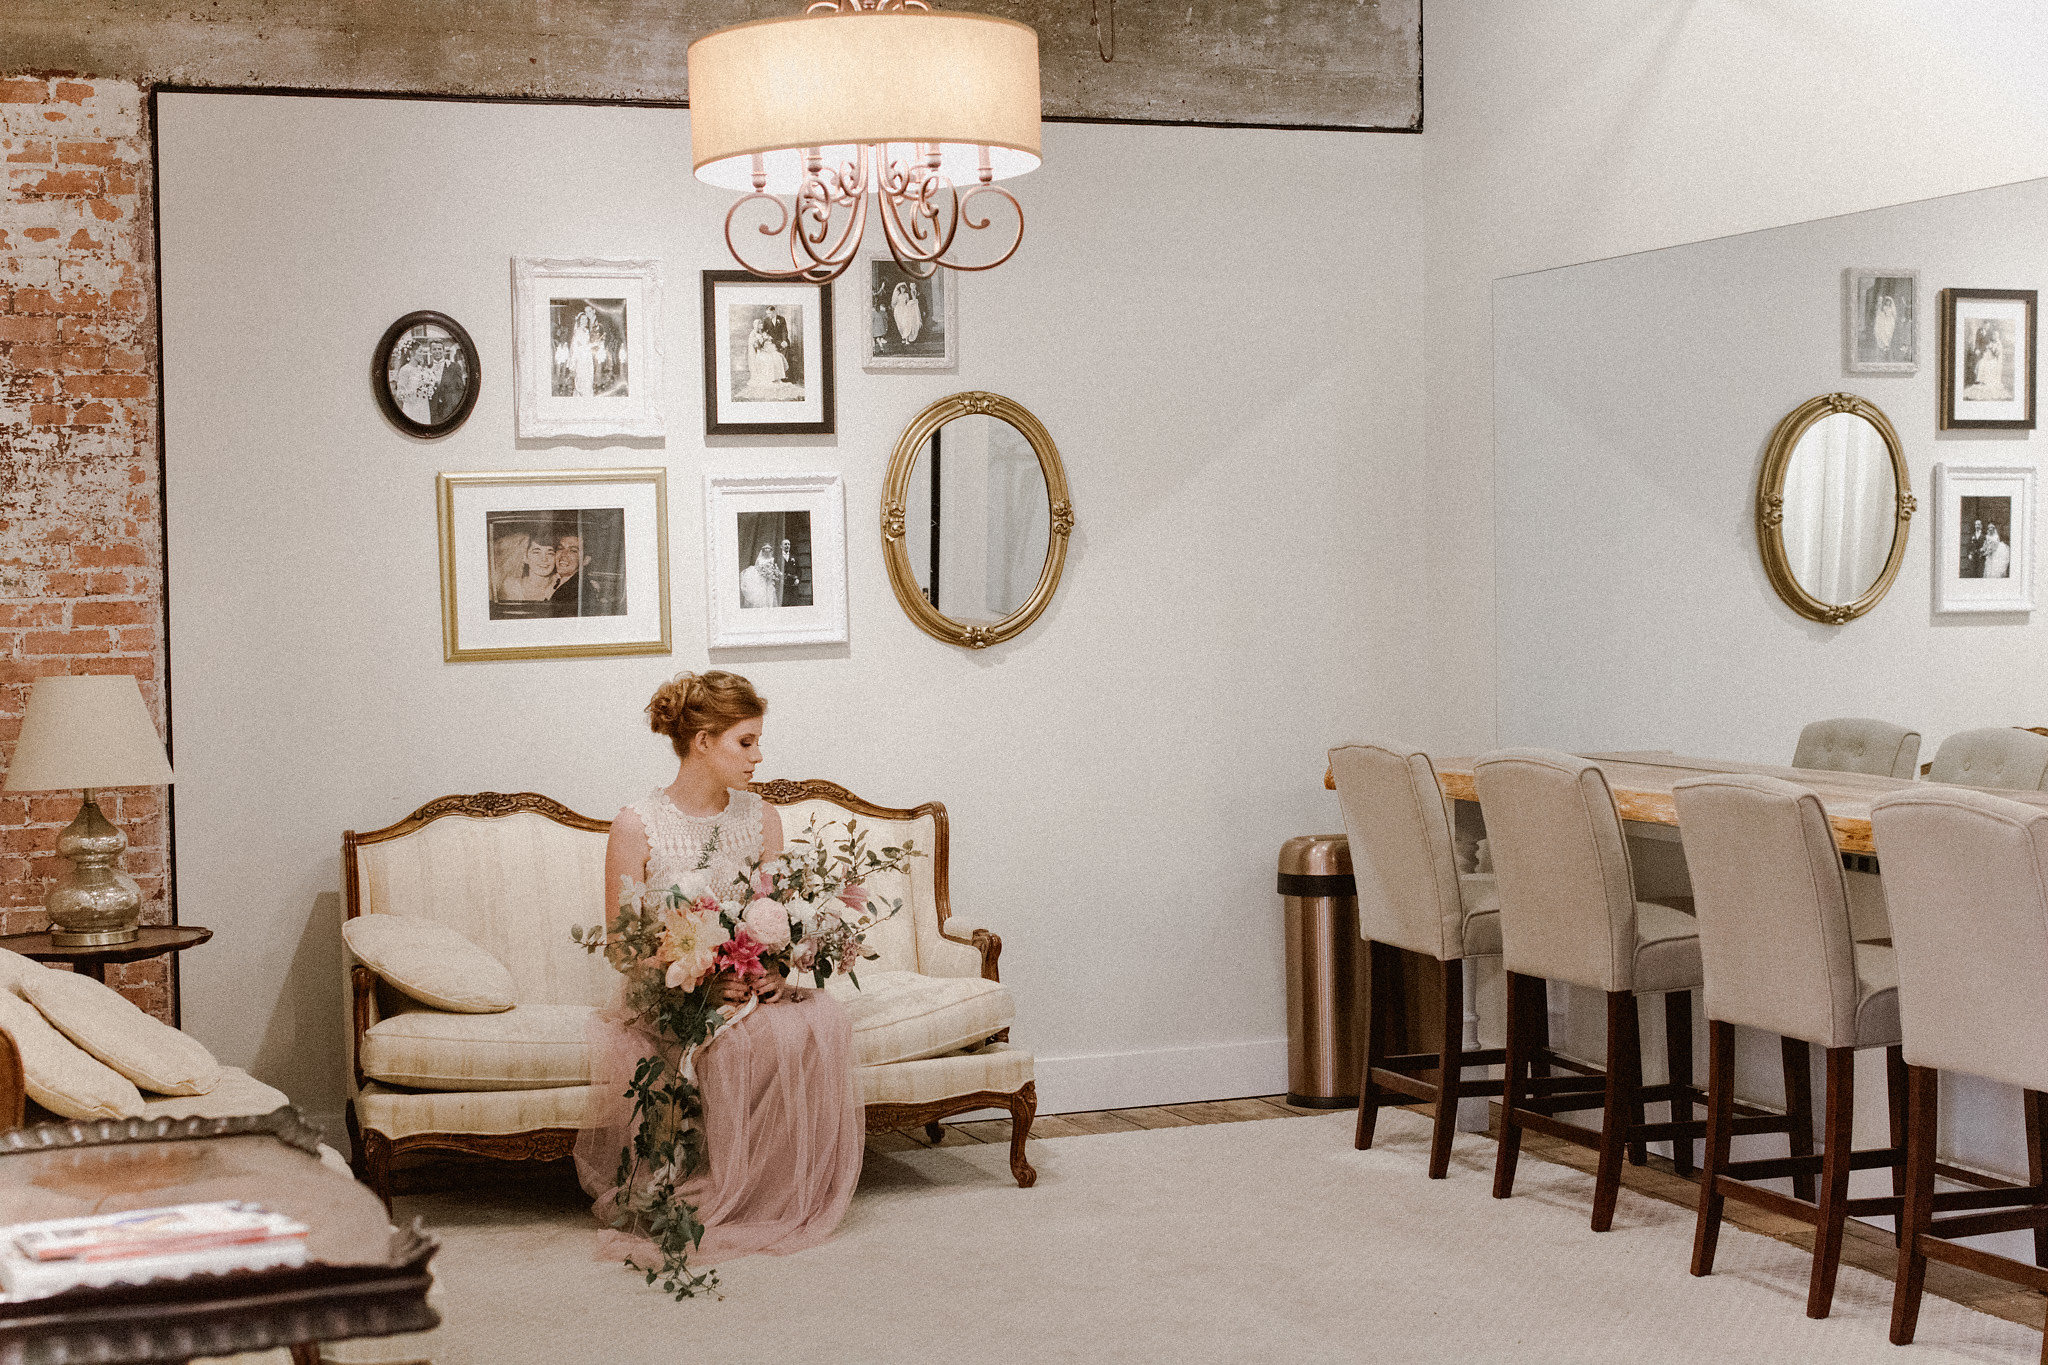 Romantic Bridal Updo hairstyle + makeup | College Station hair + makeup artist Naturally Flawless | Bryan, Texas | Pink + Purple + Vintage + Romantic + Blush + crochet + Ice house on Main wedding venue bridal suite | Wedding Coordinator Epoch Co+